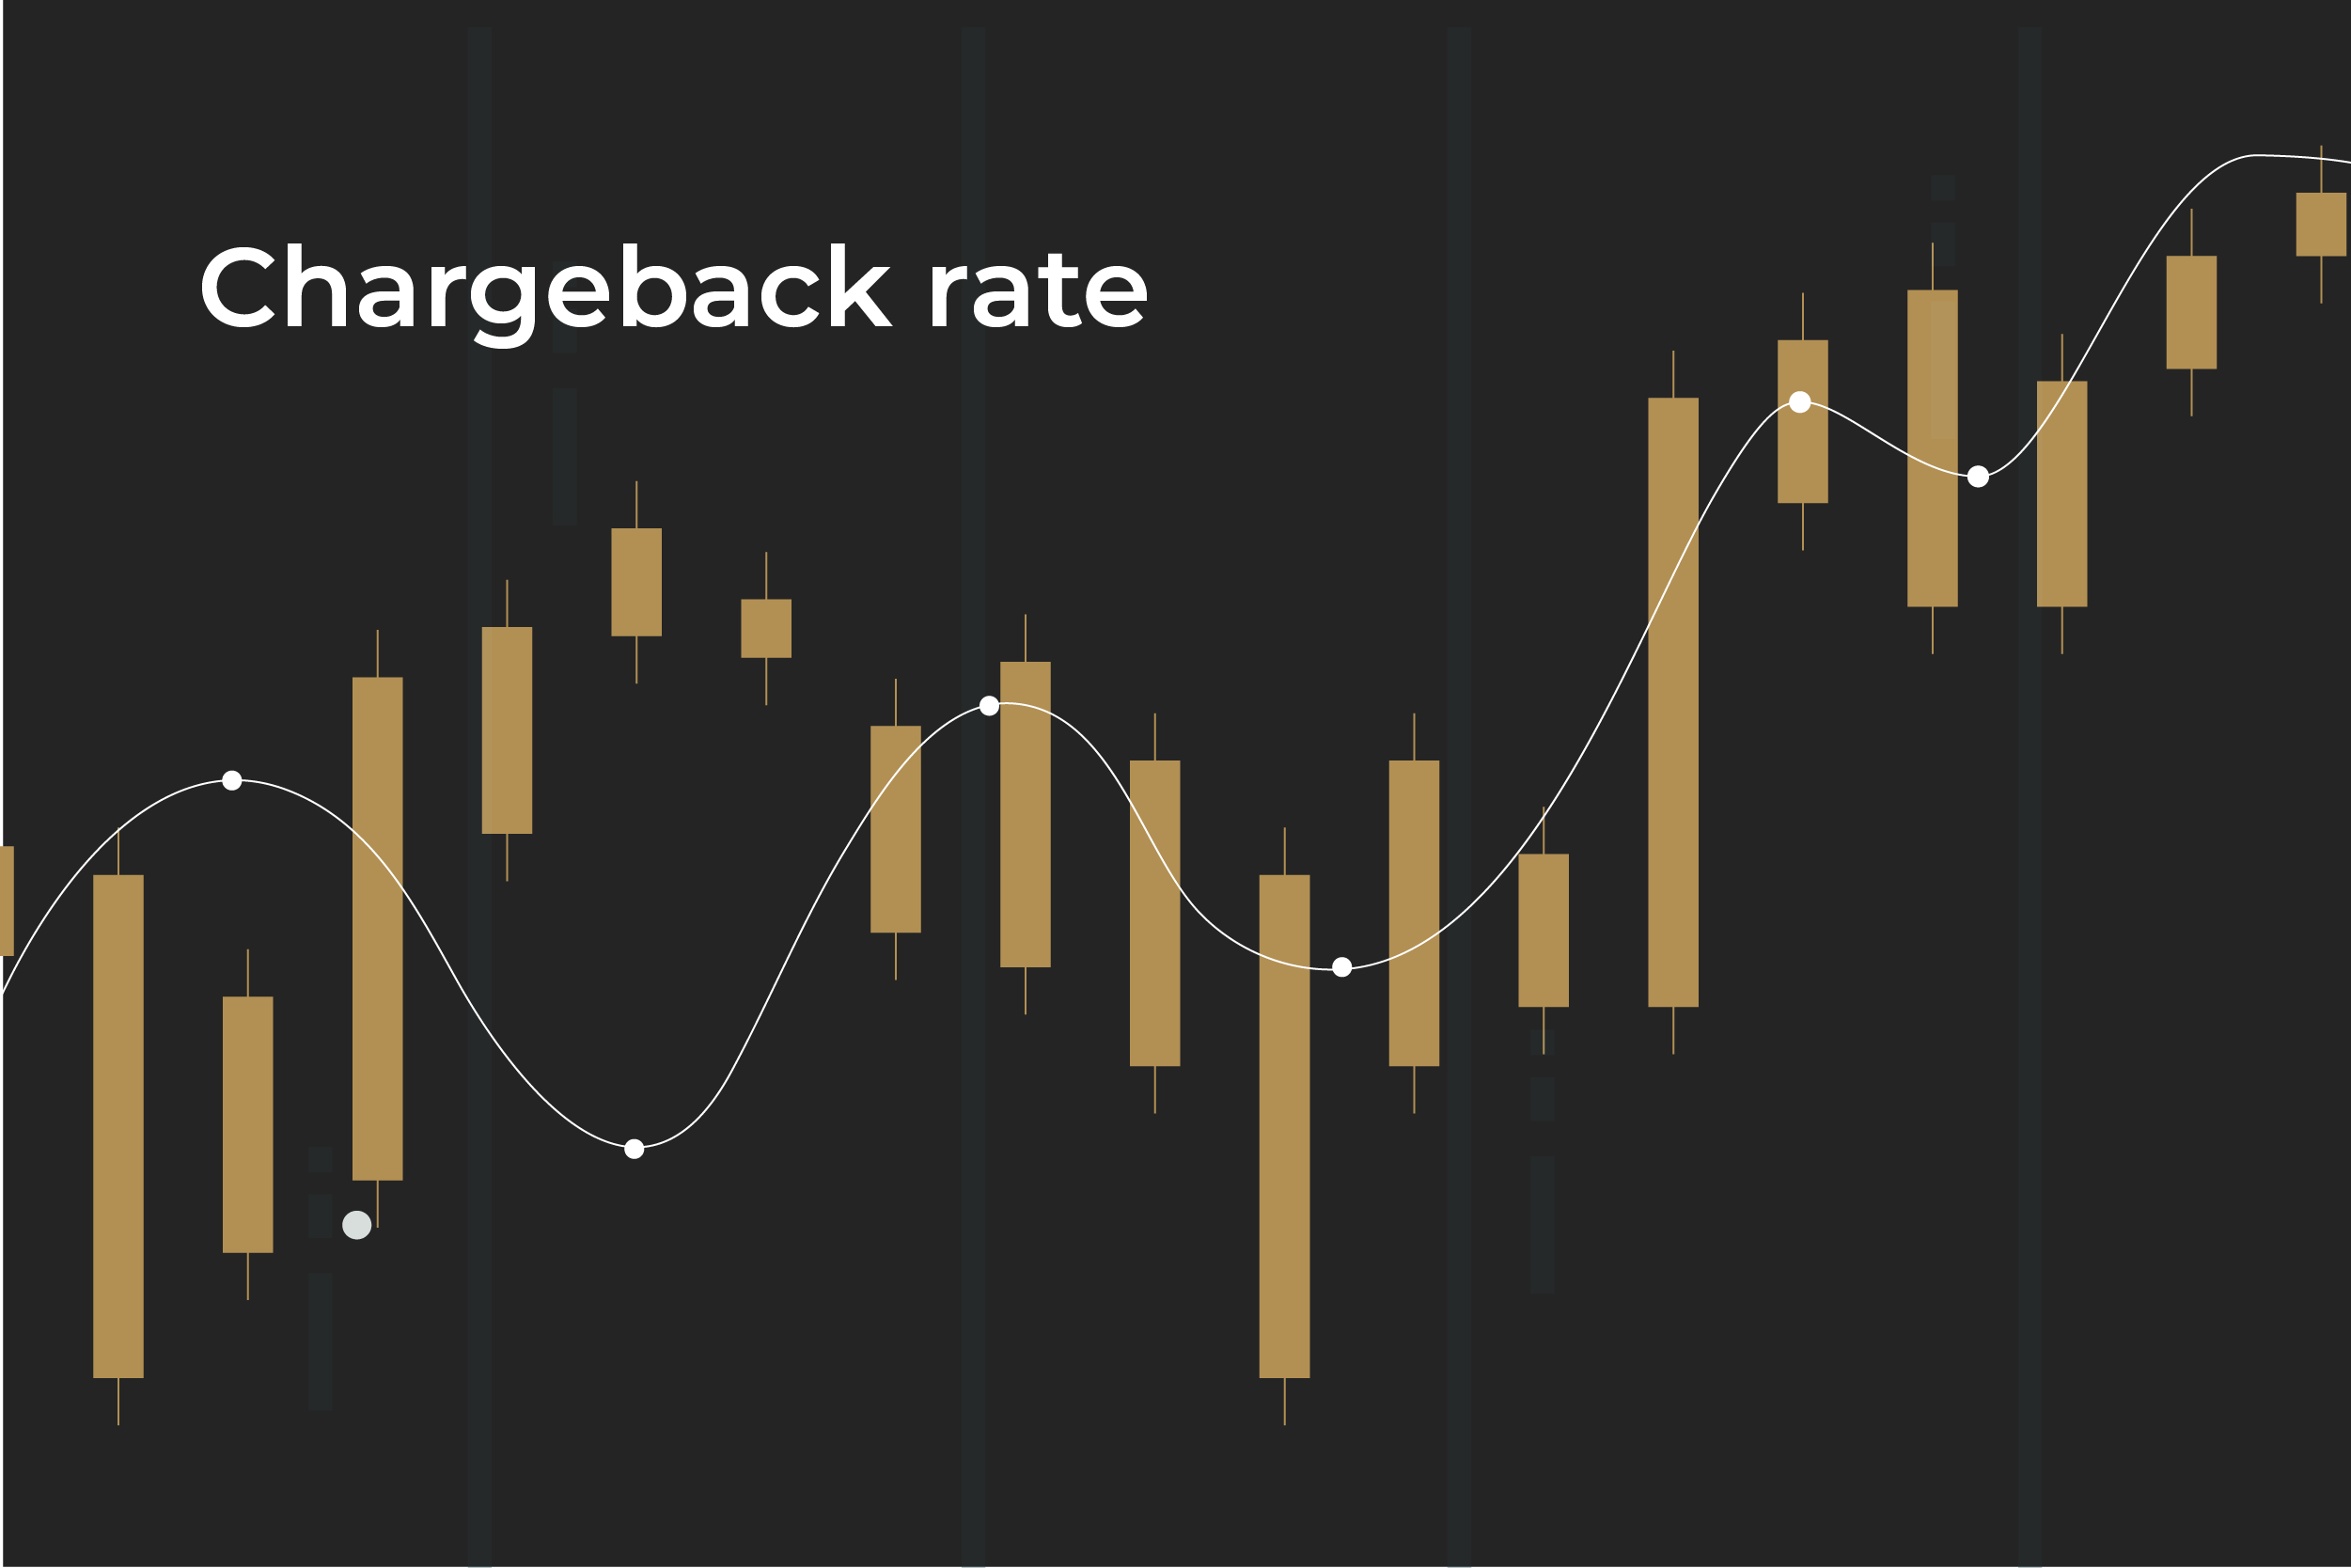 How to keep the chargeback rate in check